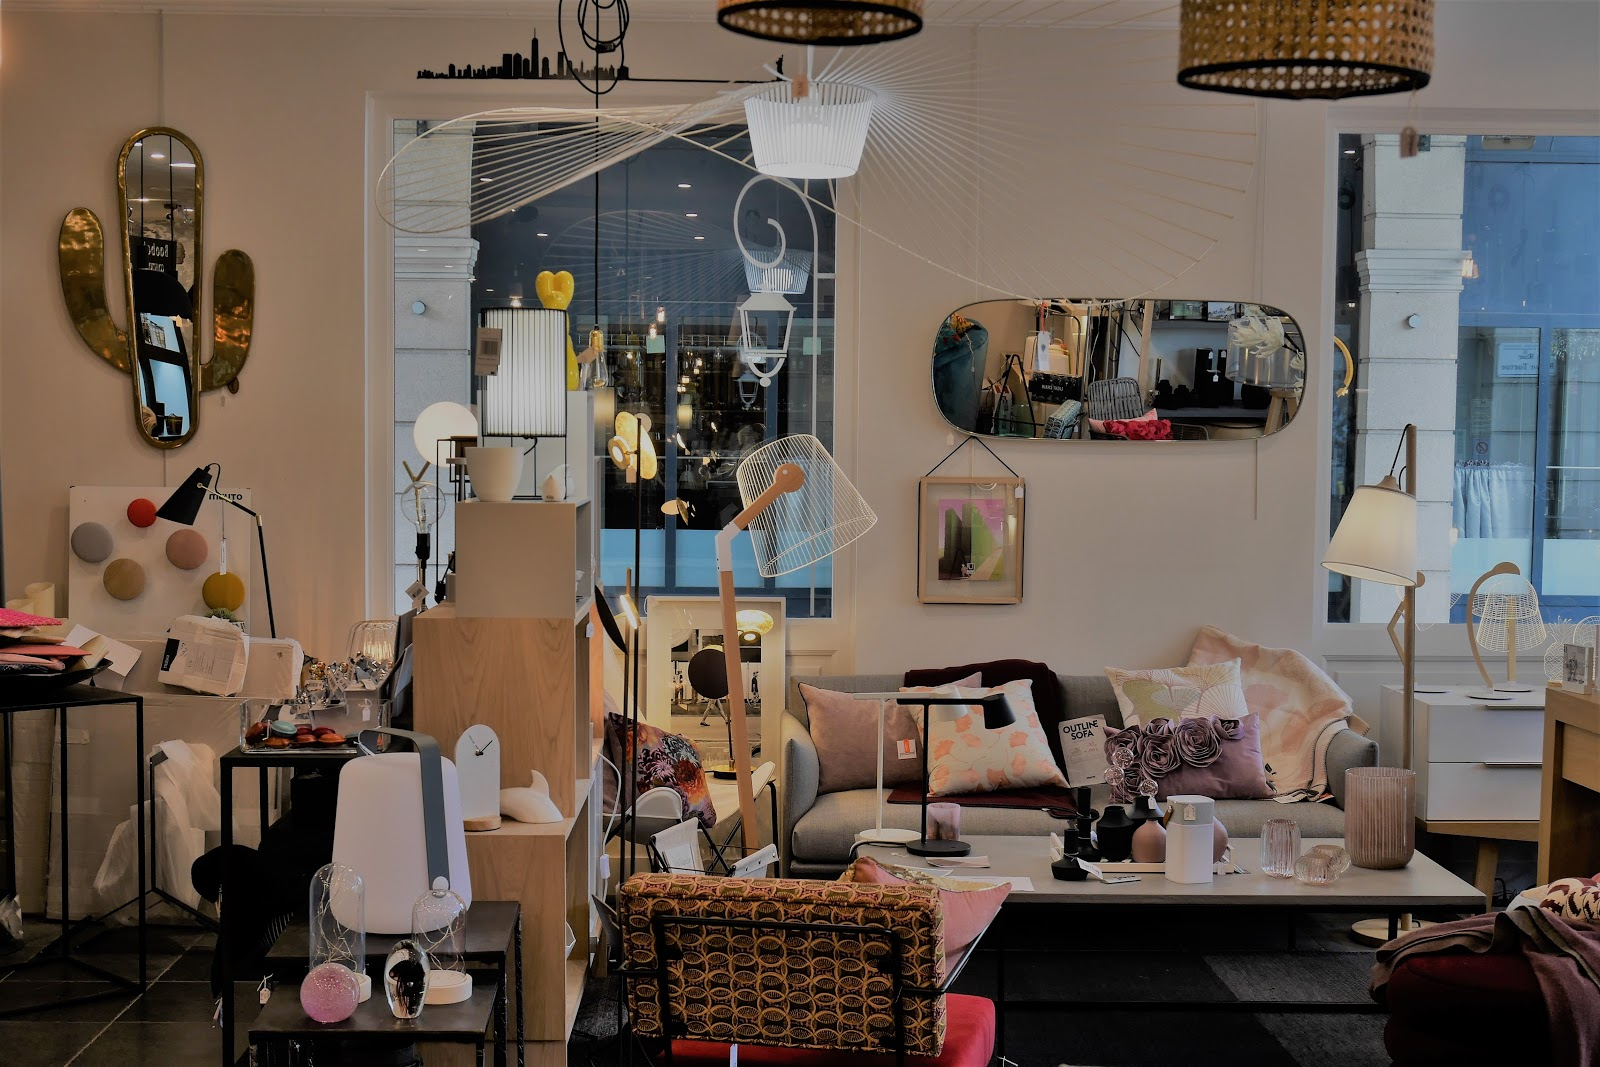 une-place-en-ville-boutique-de-decoration-d-interieur-le-plessis-robinson-1